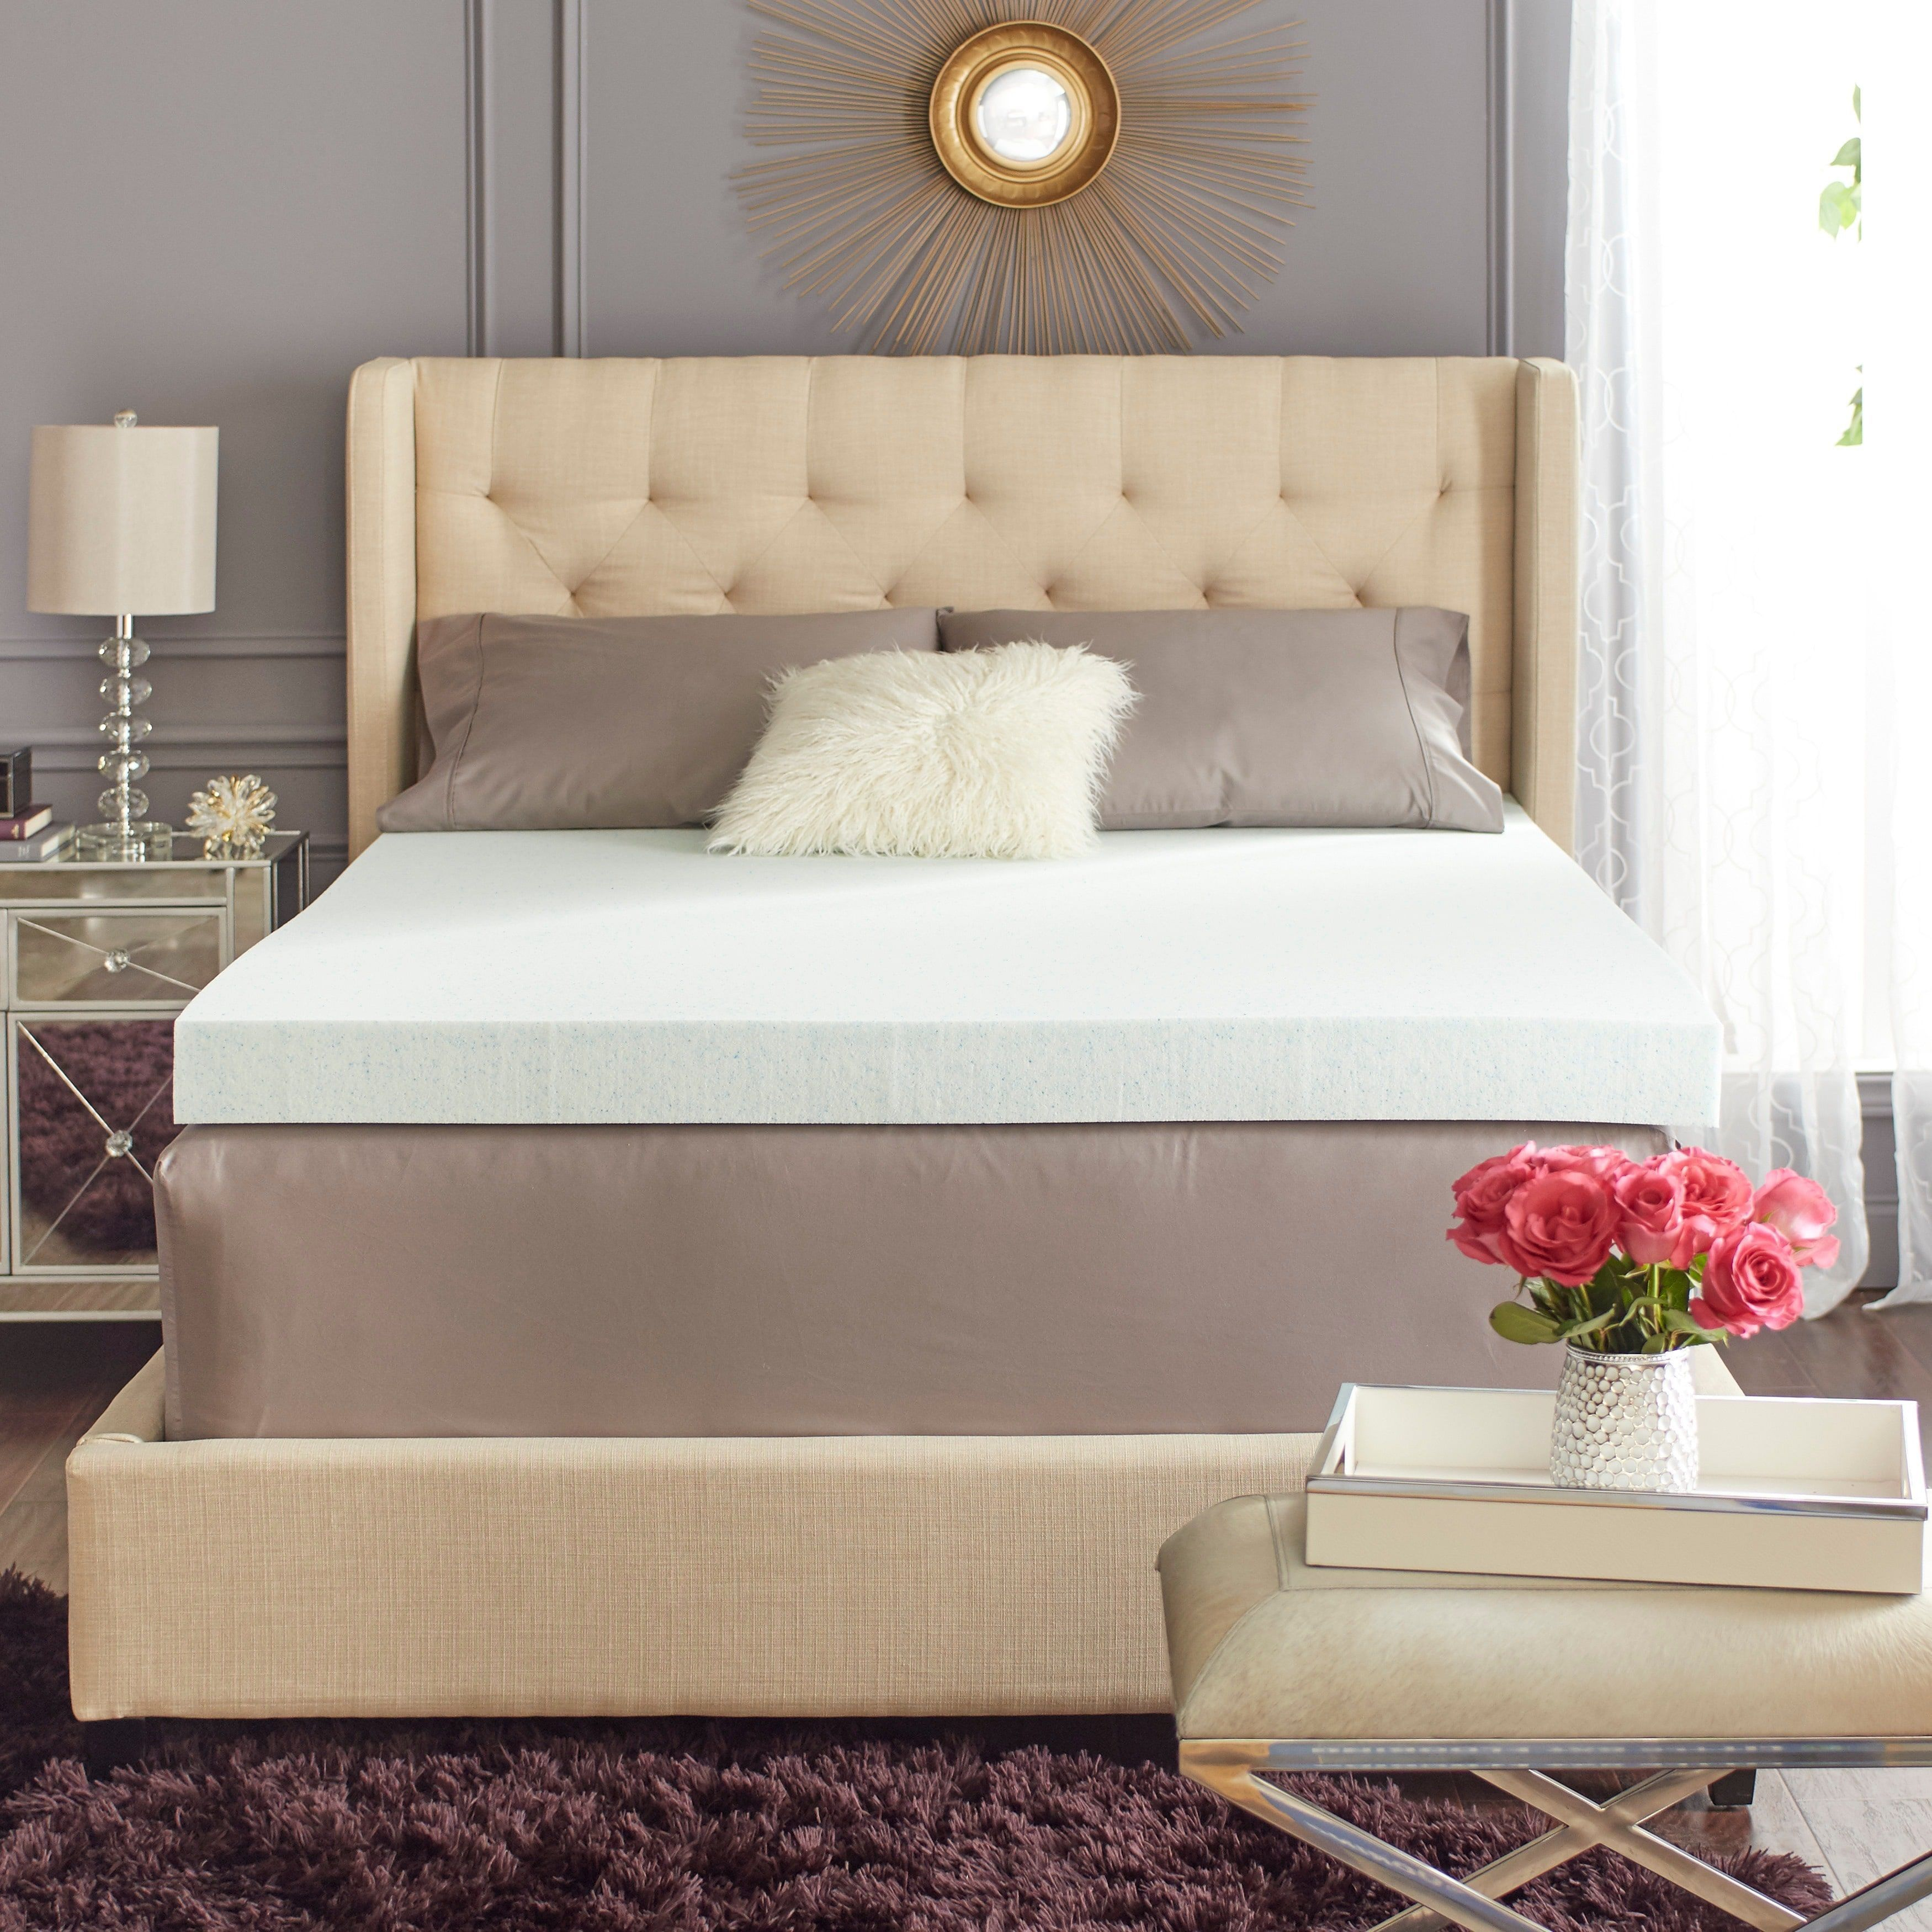 topper dreams uncategorized foam serta contour imgid unbelievable comfort memory and concept styles pics mattress of ultimate queen with hybrid inch